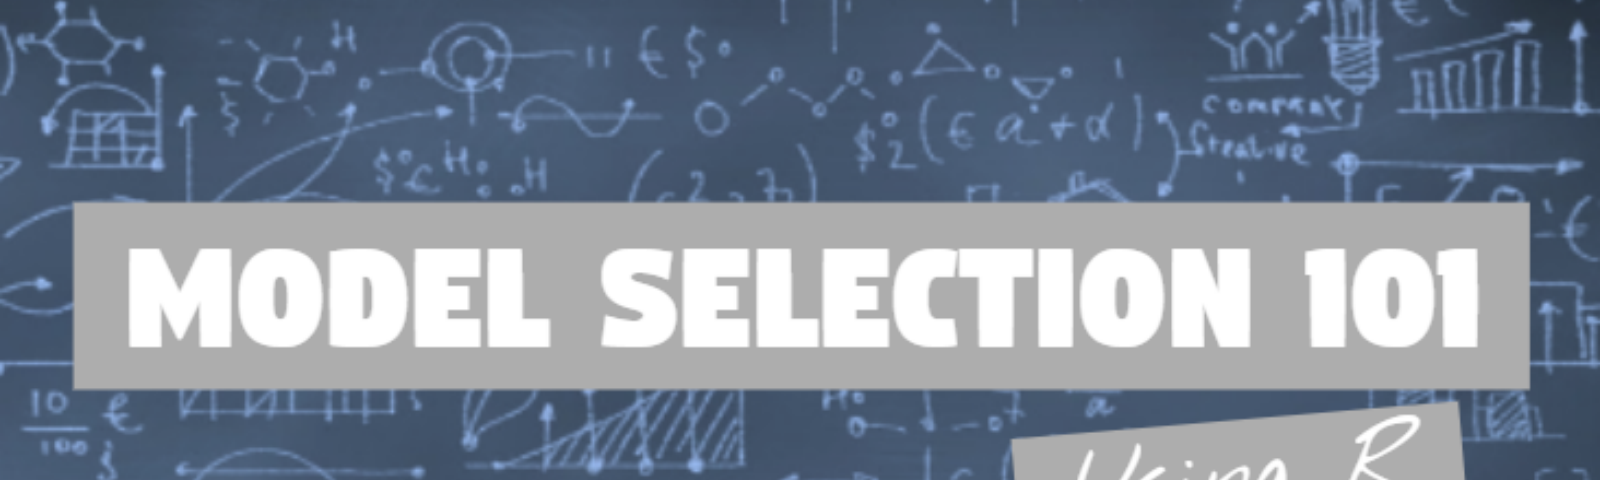 Model selection 101, using R - Towards Data Science